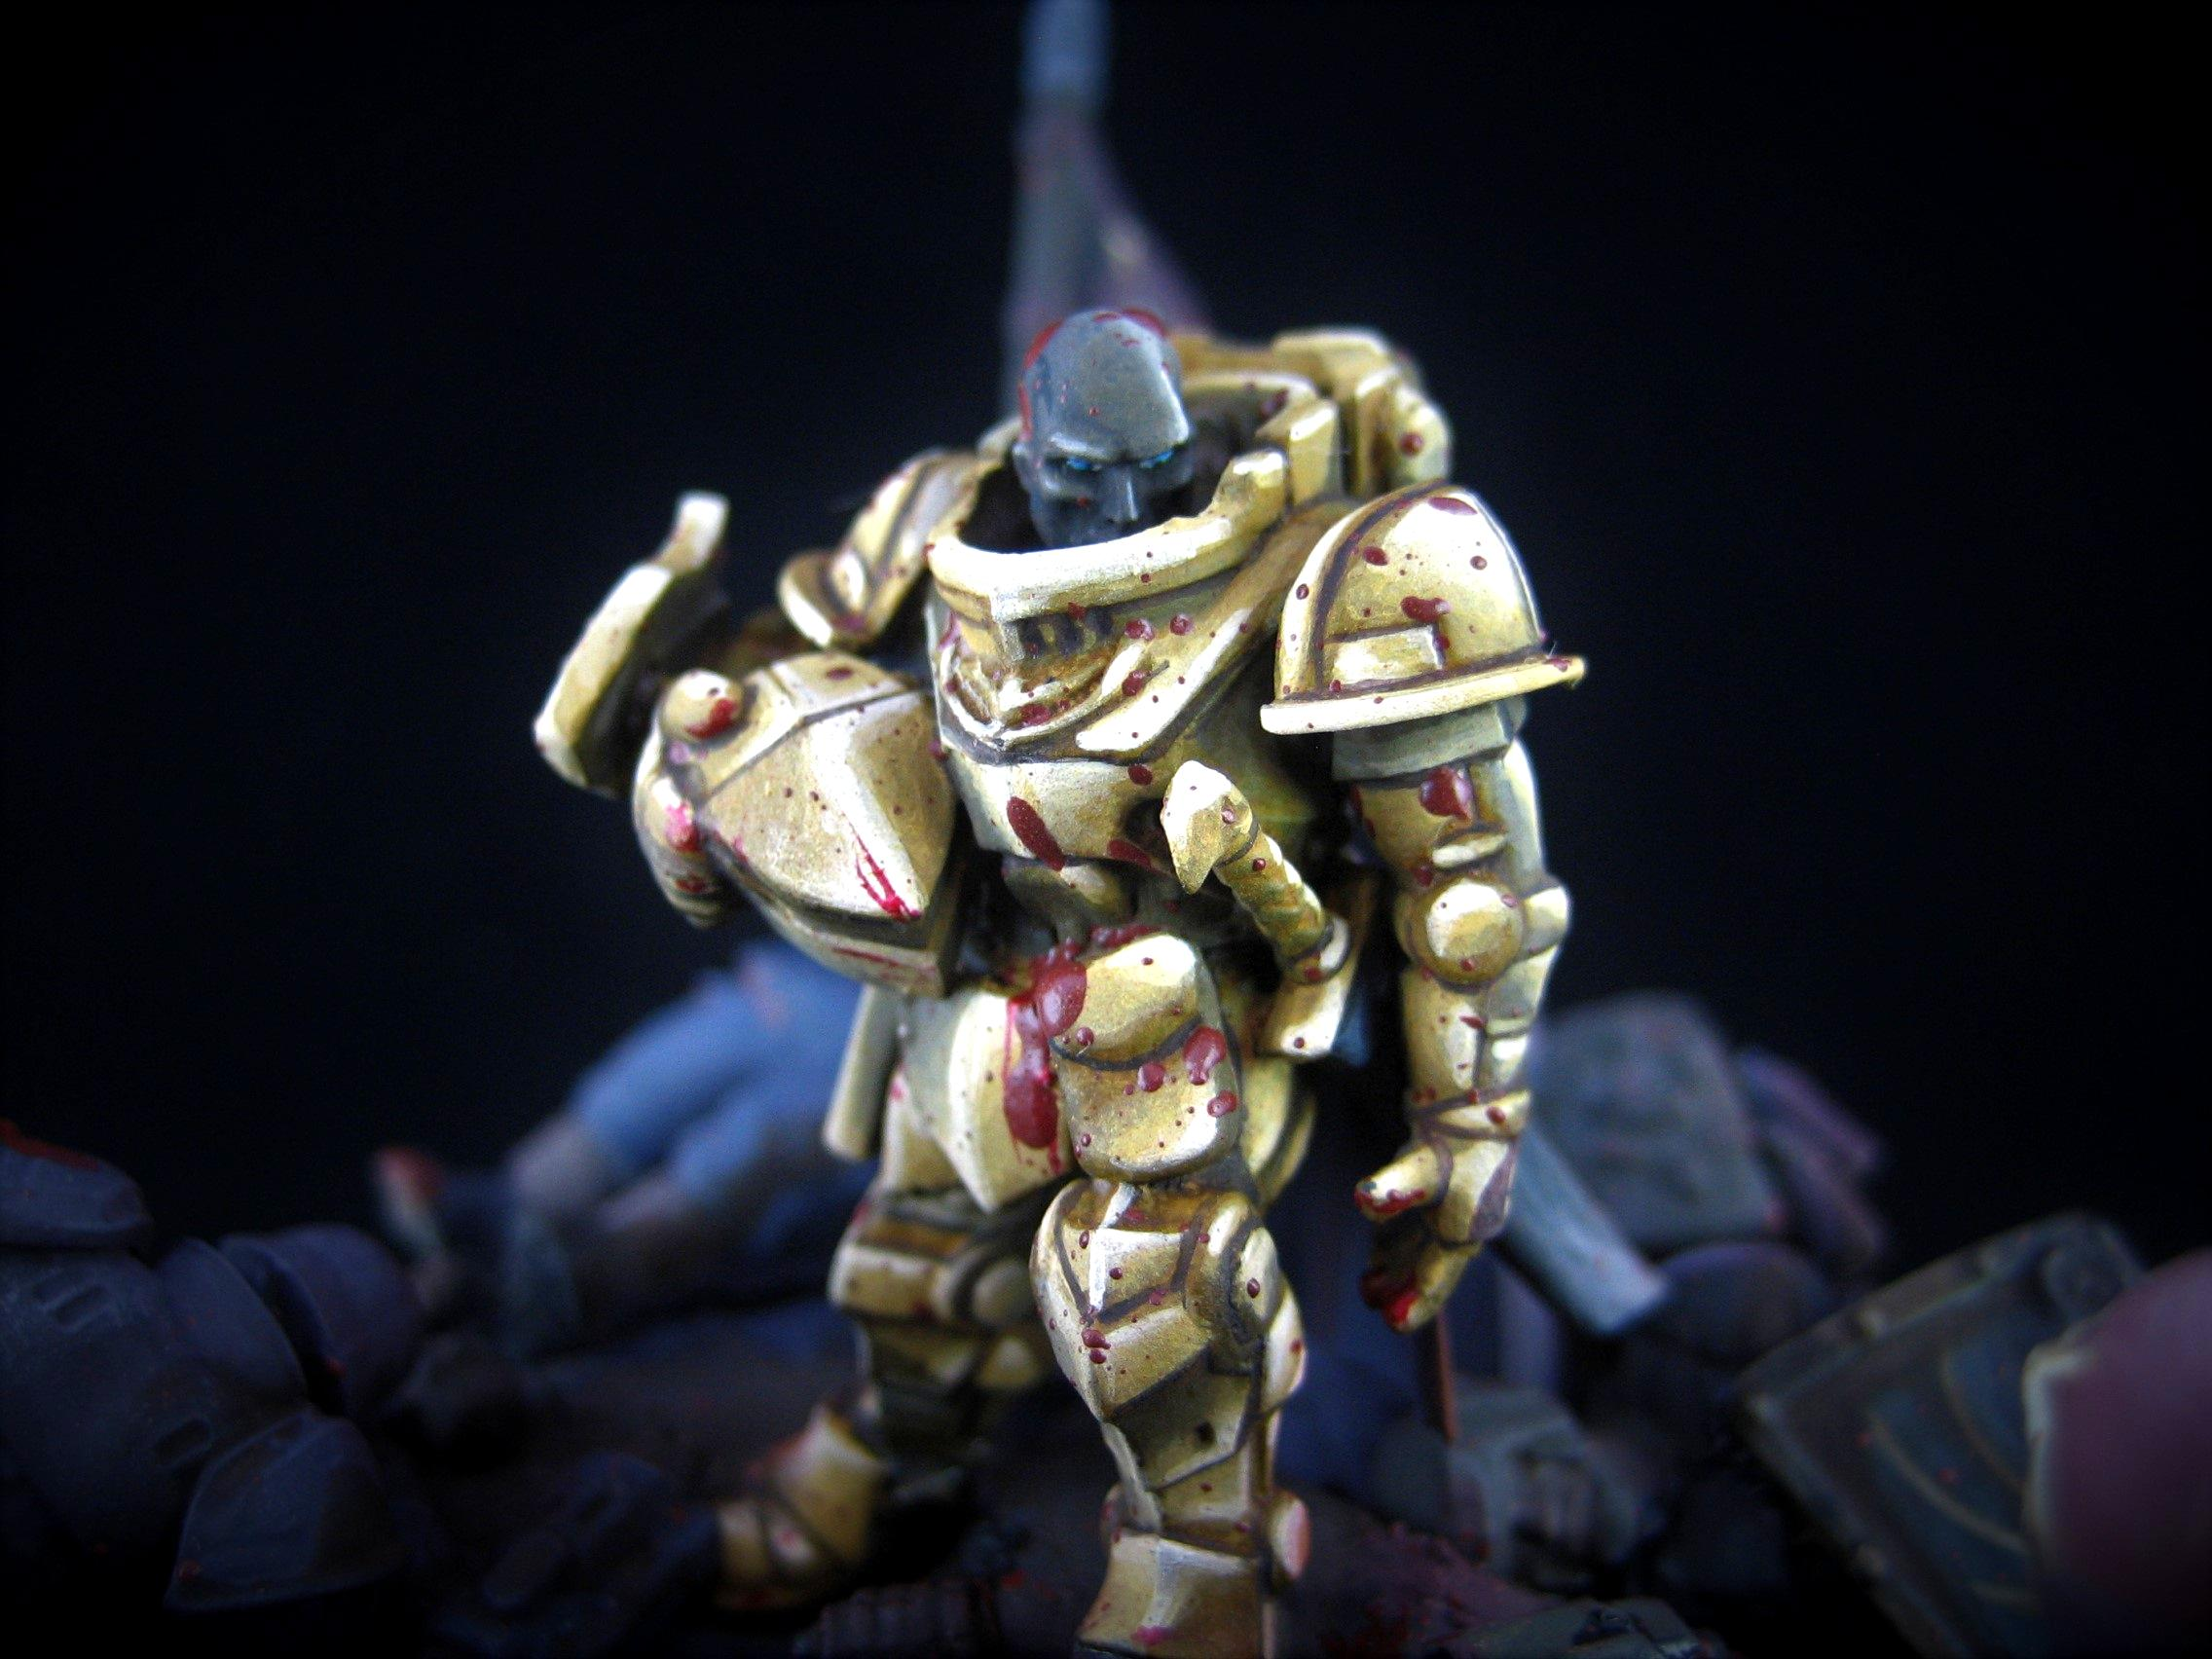 Blood, Dead, Diorama, Final Stand, Imperial Guard, Orks, Space Marines, To The Bitter End